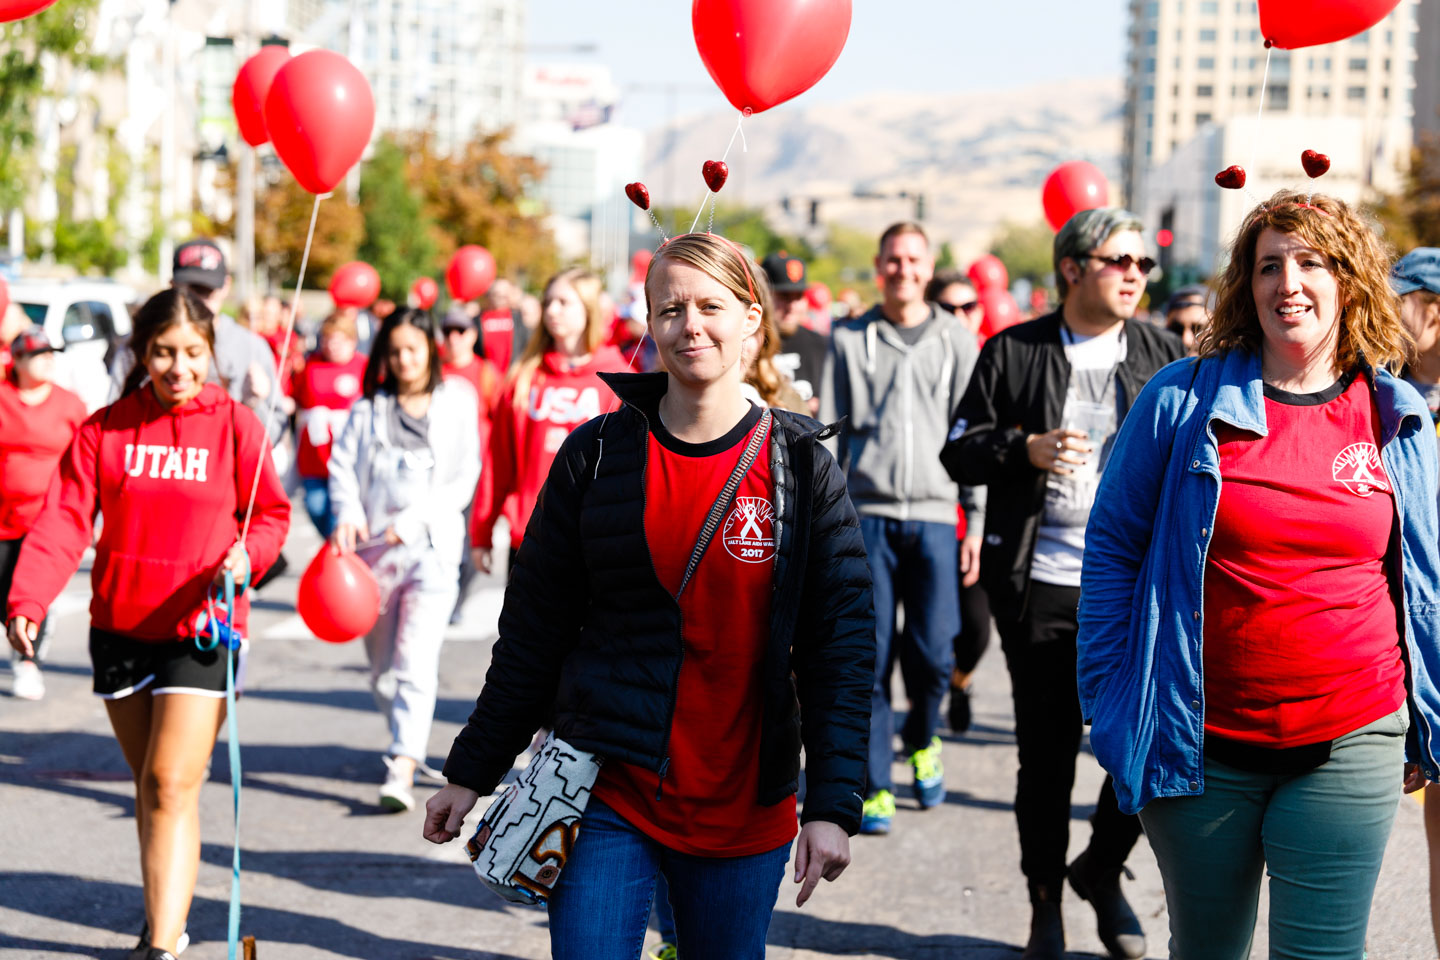 The Walk for Life with the Utah AIDS Foundation